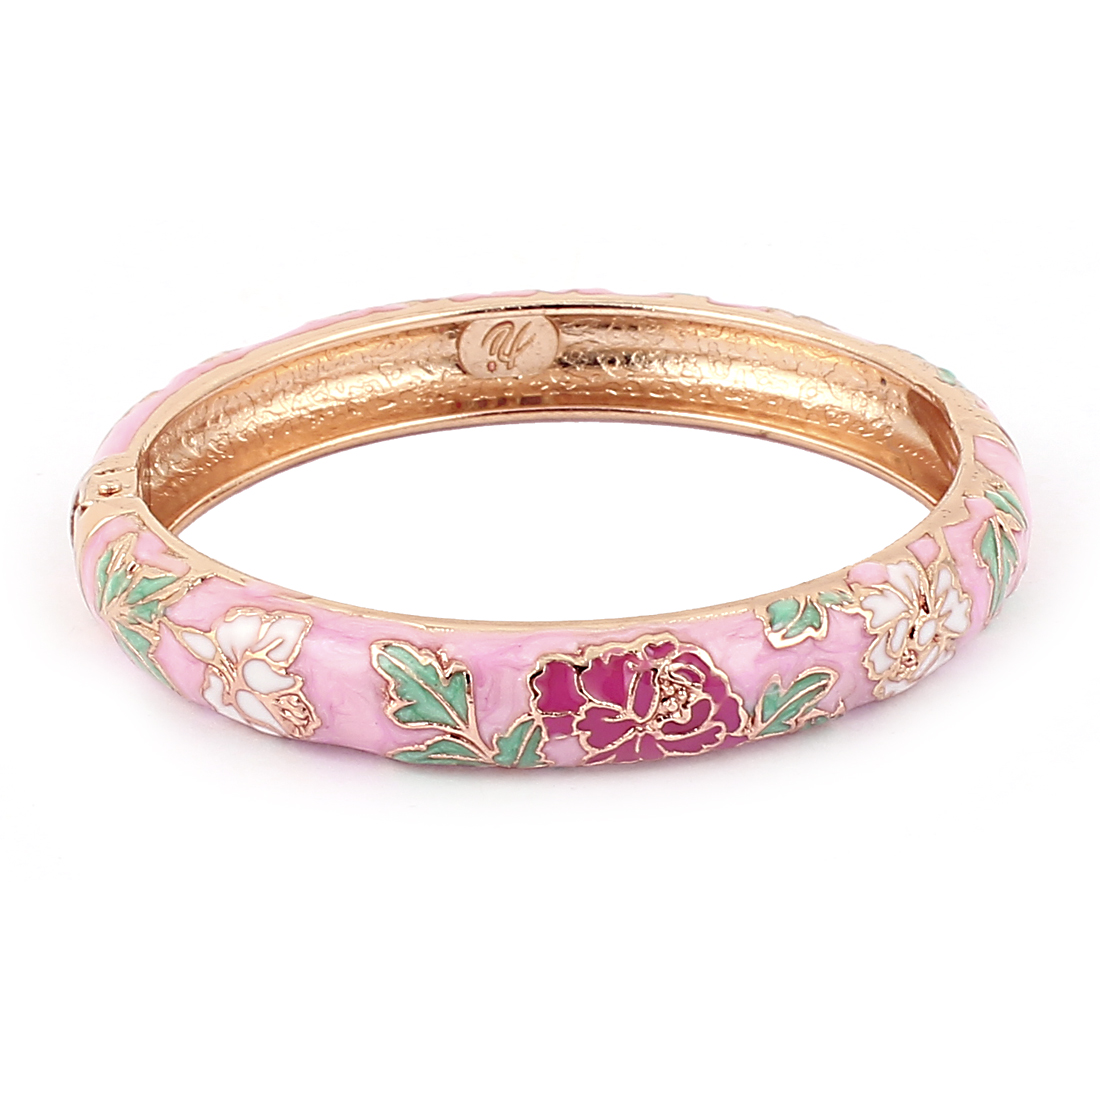 Lady Floral Gold Plated Hinge Clasp Enamel Bangle Cuff Bracelet Jewelry